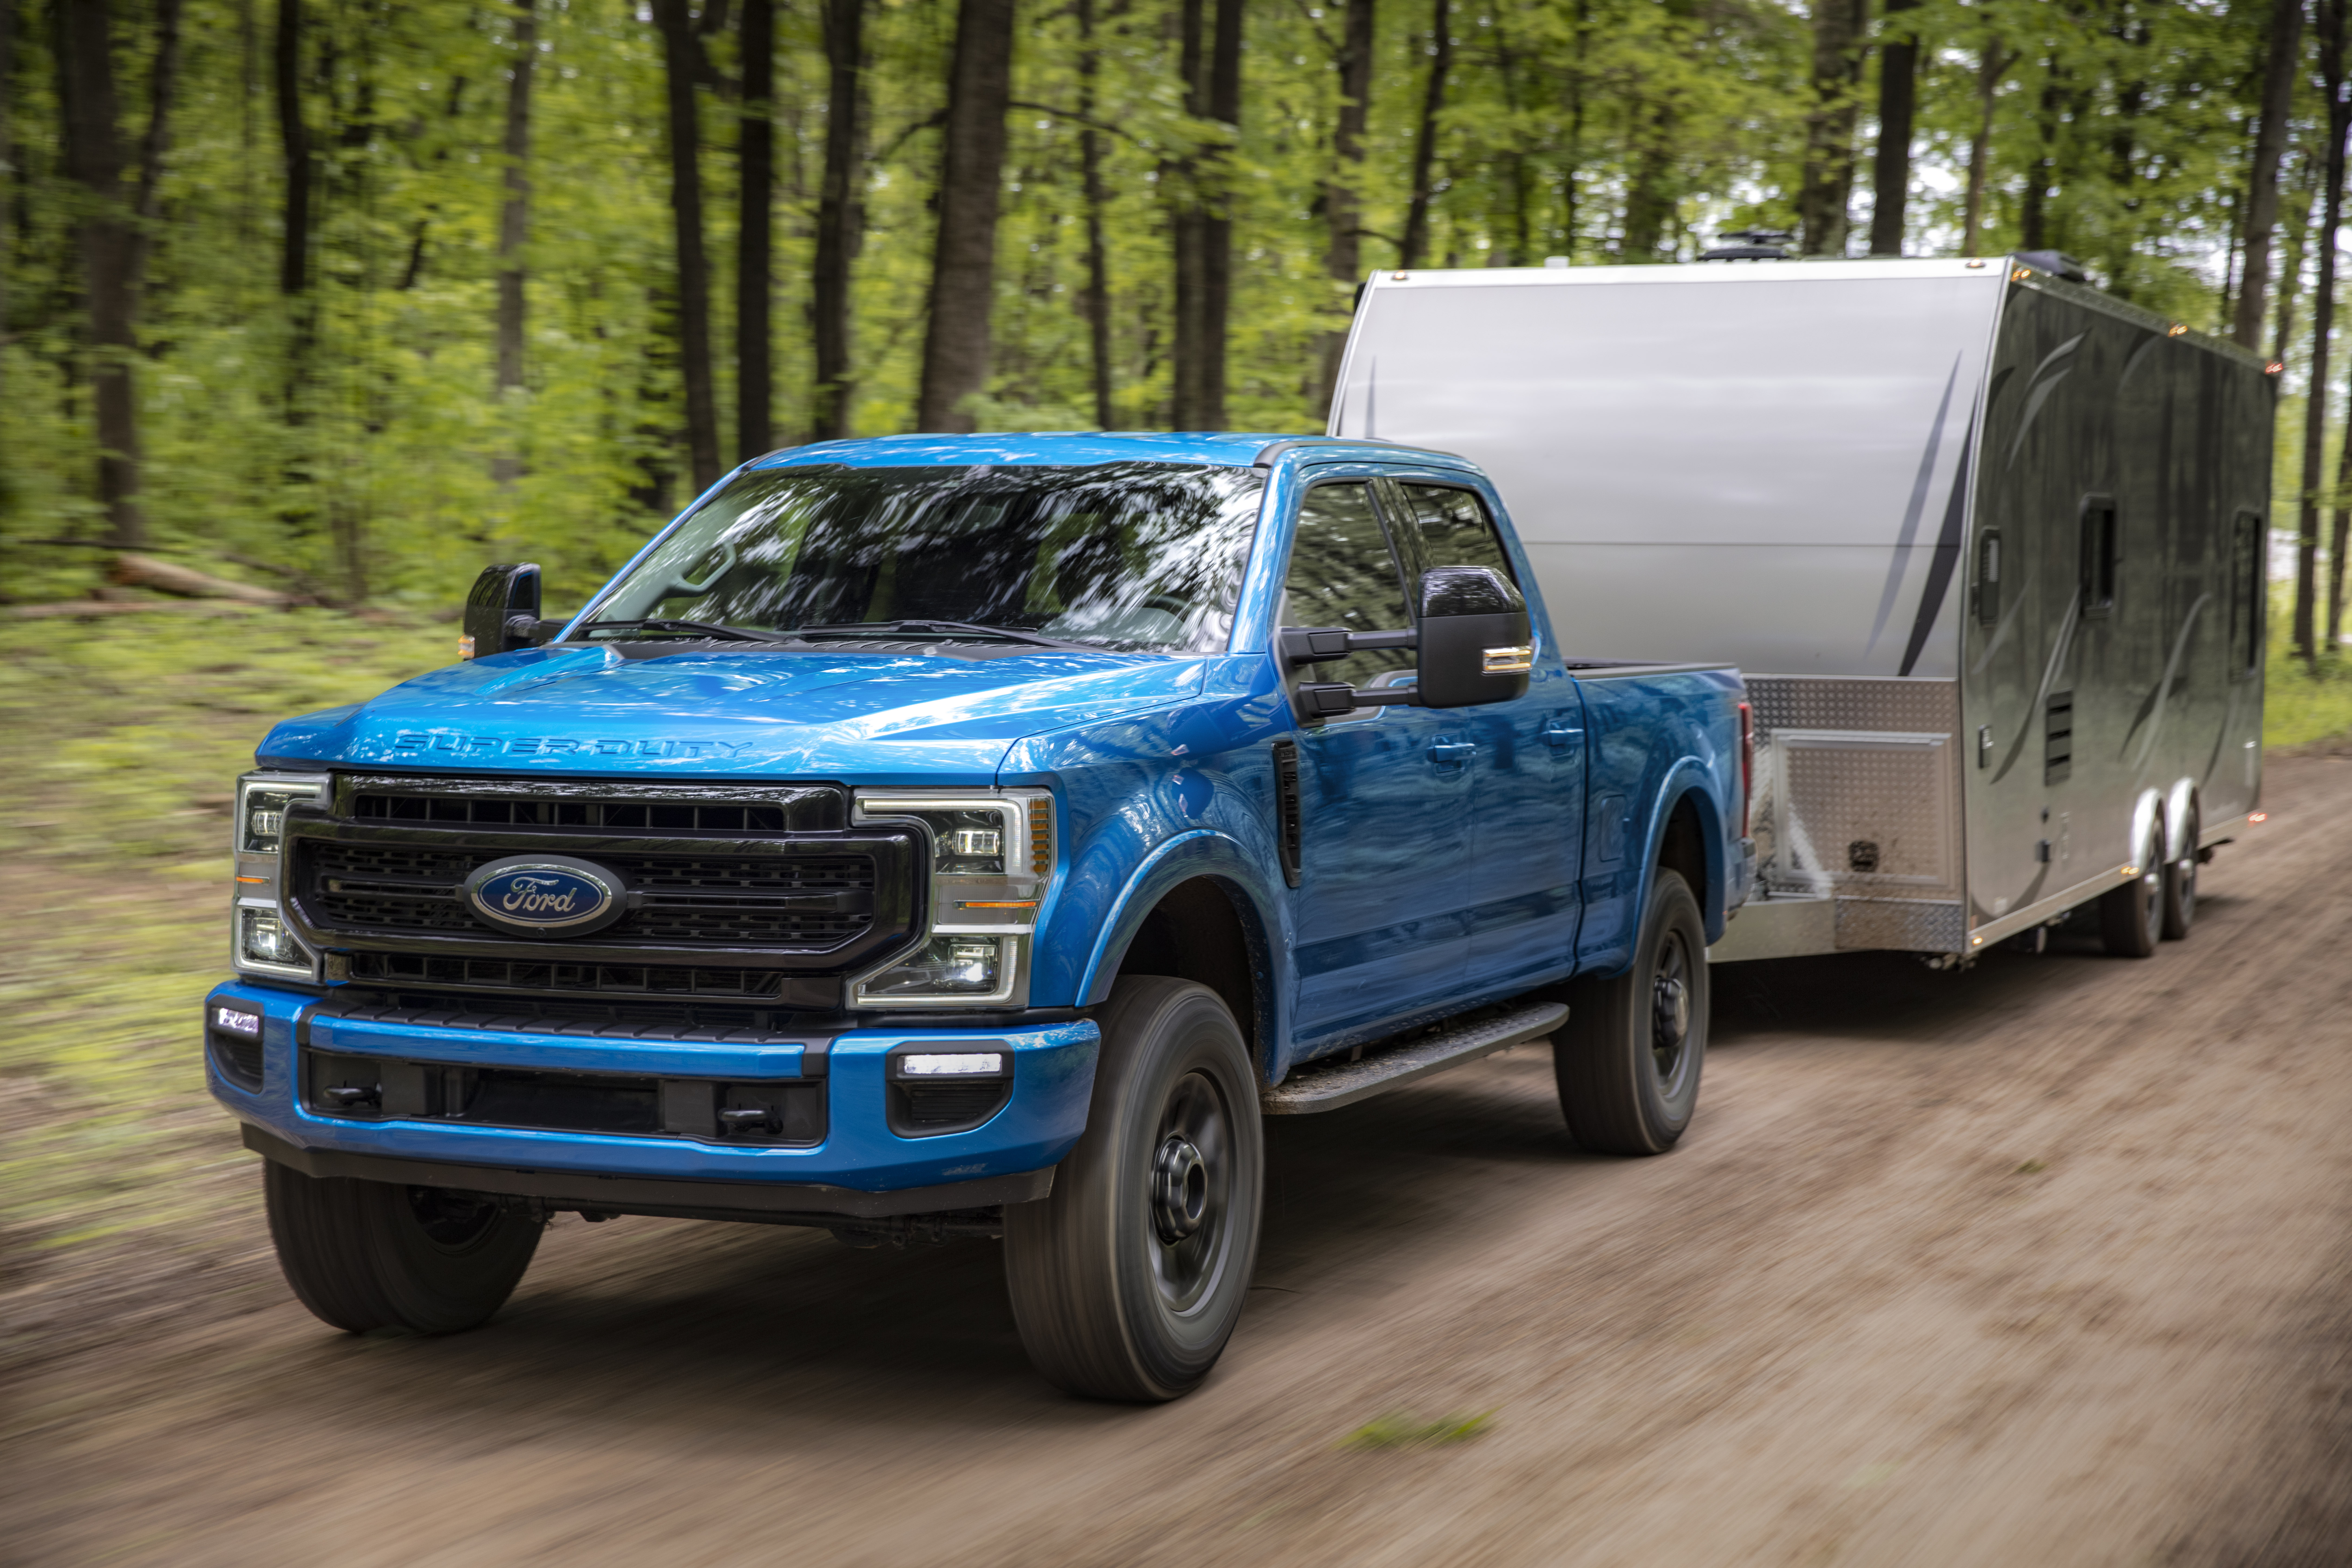 F-Series Super duty towing trailer through woods